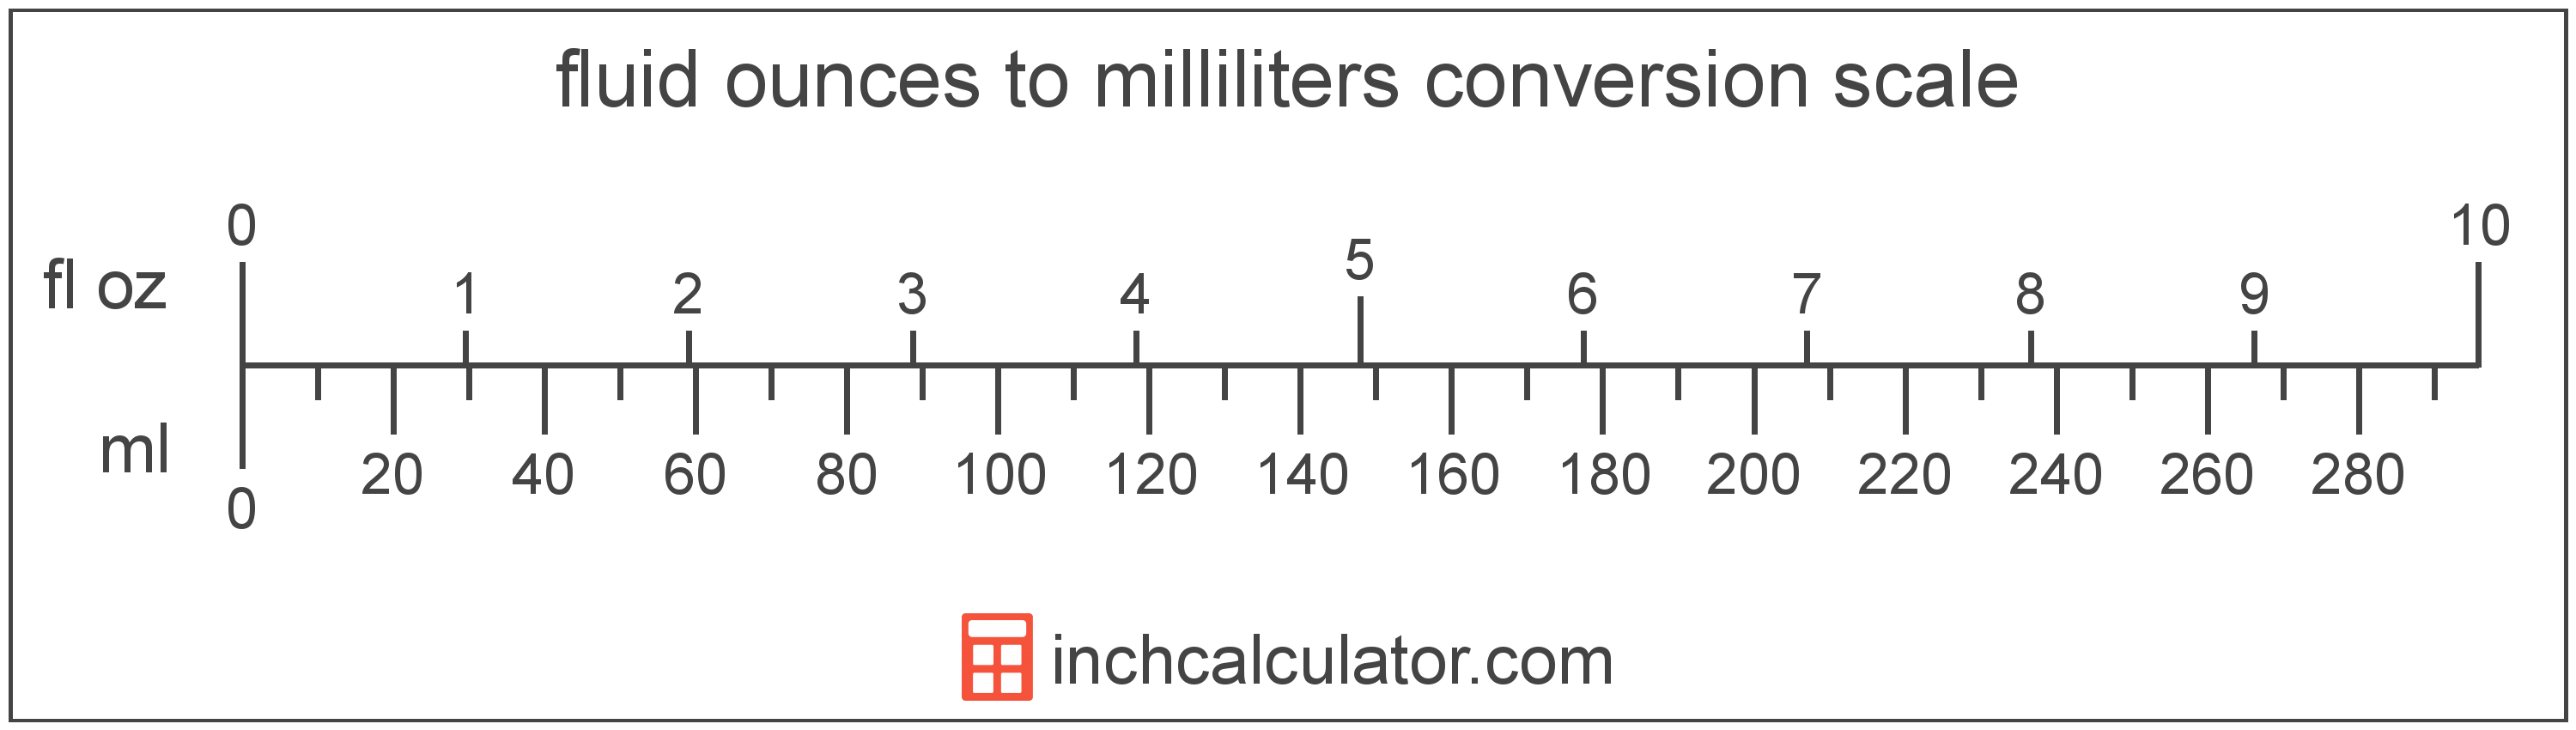 conversion scale showing milliliters and equivalent fluid ounces volume values